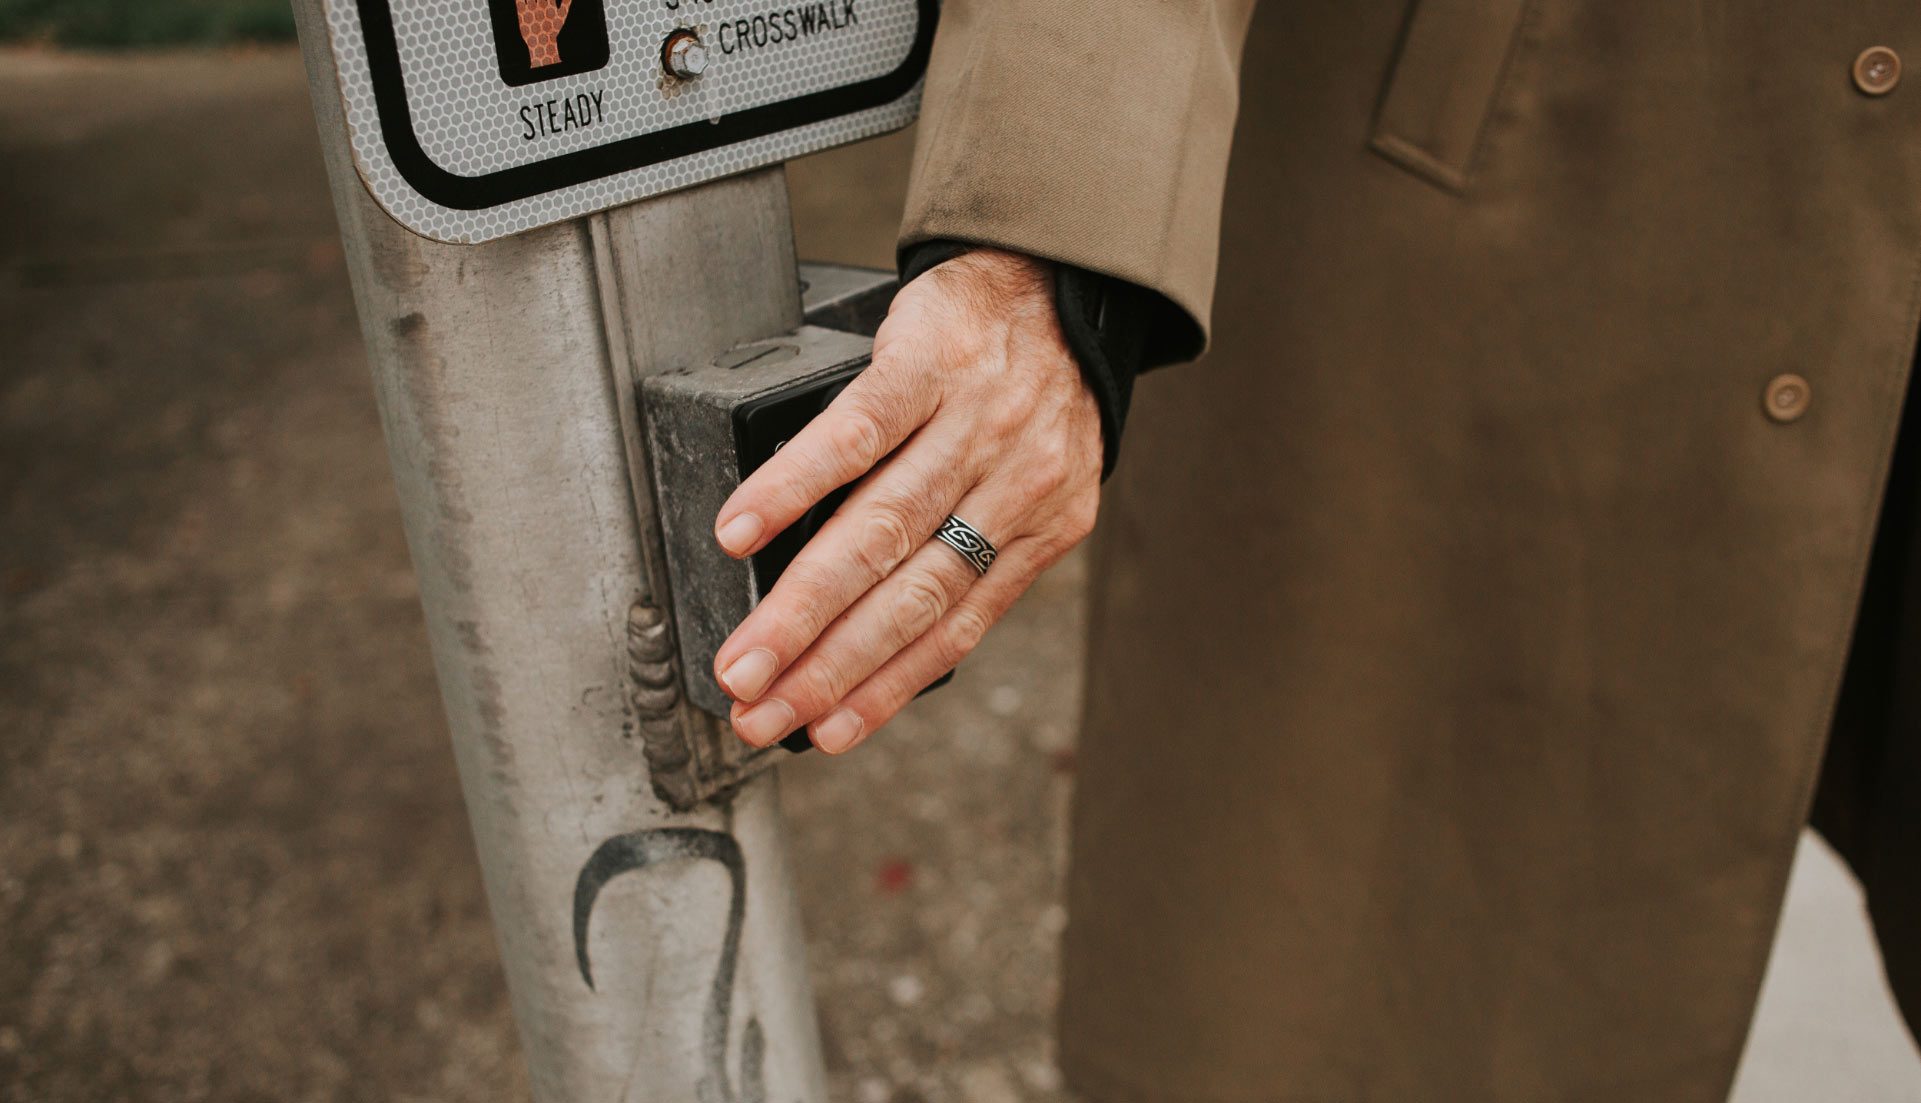 Donald places his hand on the pedestrian call button at a street crossing. He has a ring on his middle finger.